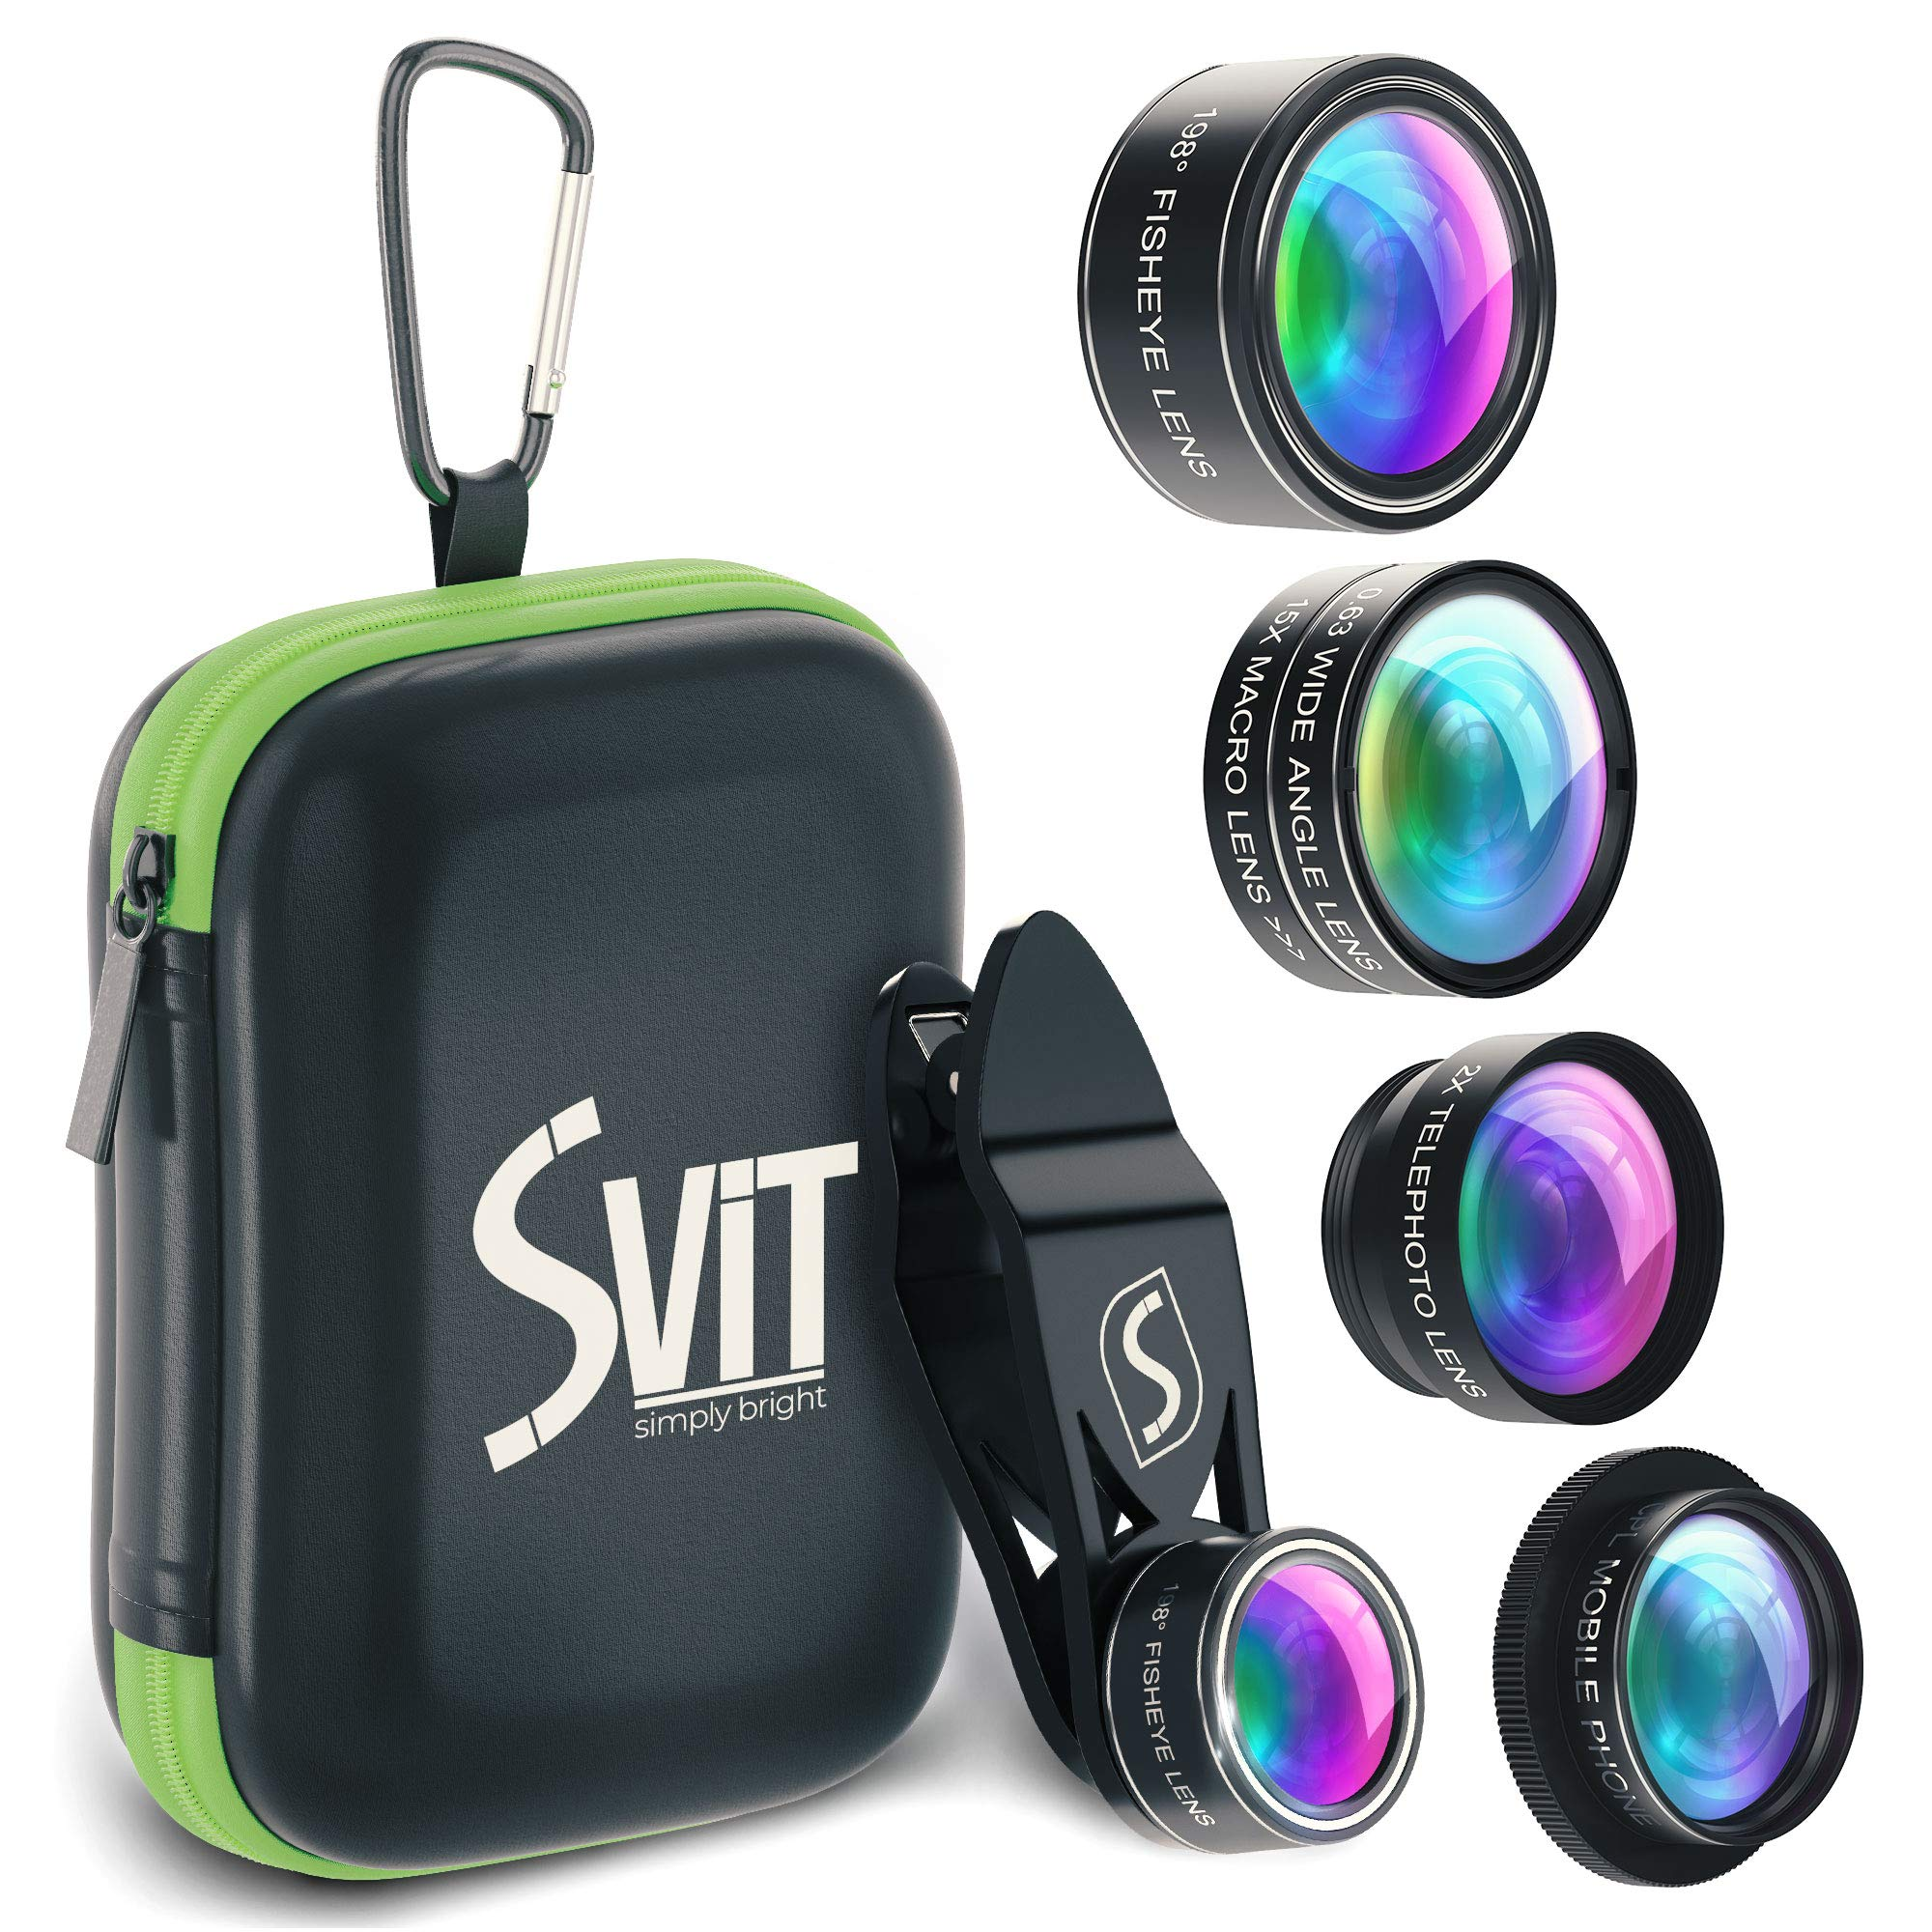 Phone Camera Lens Kit - 5 in 1 Universal Set for iPhone, Samsung, Smartphones and Tablets - 2X Zoom Telephoto, 198 Fisheye, 0.63X Wide Angle, 15X Macro, CPL Filter Lens for Cell Phones